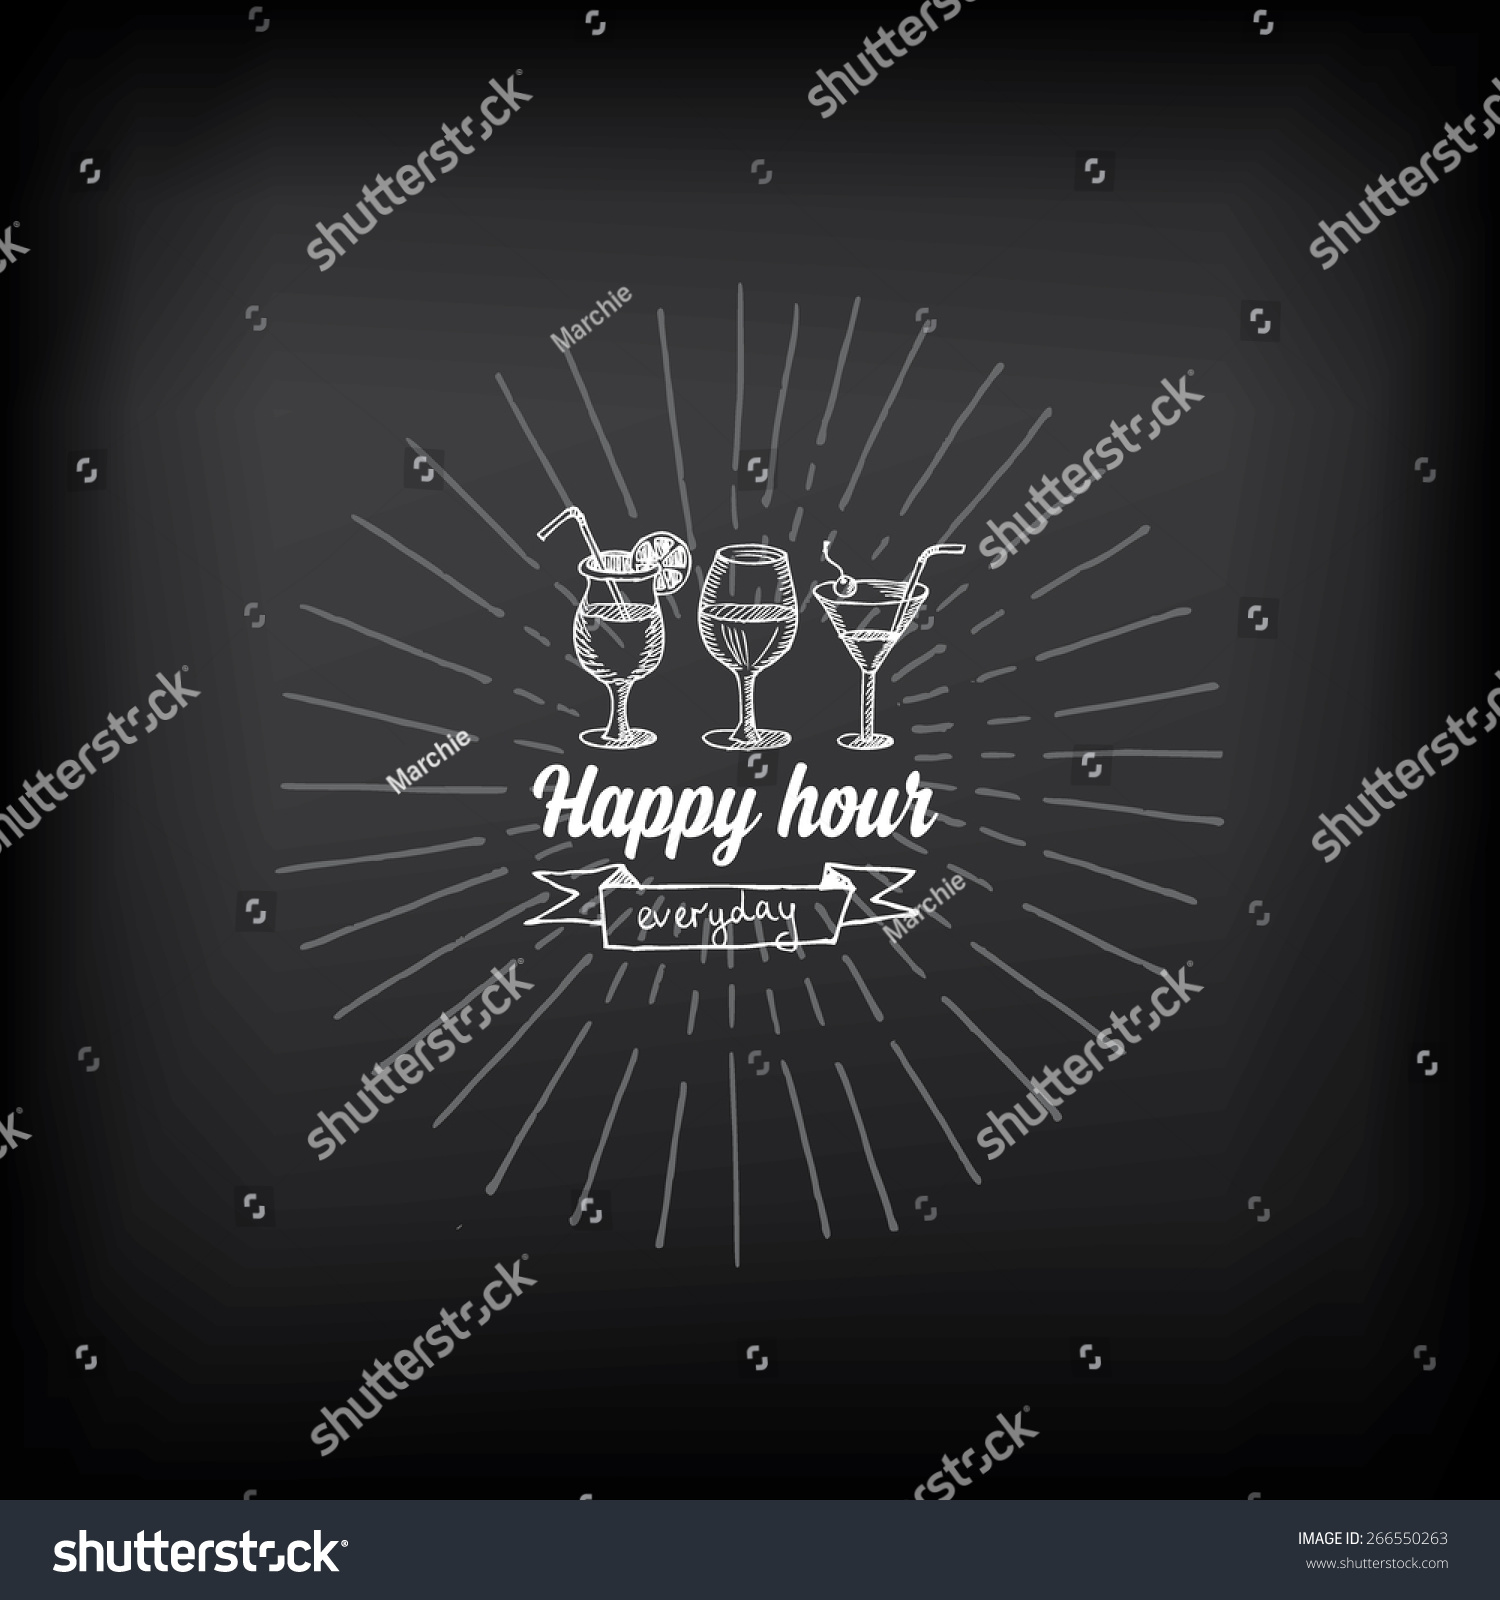 Chalkboard Invitation Banners - How to make a birthday invitation in photoshop elements